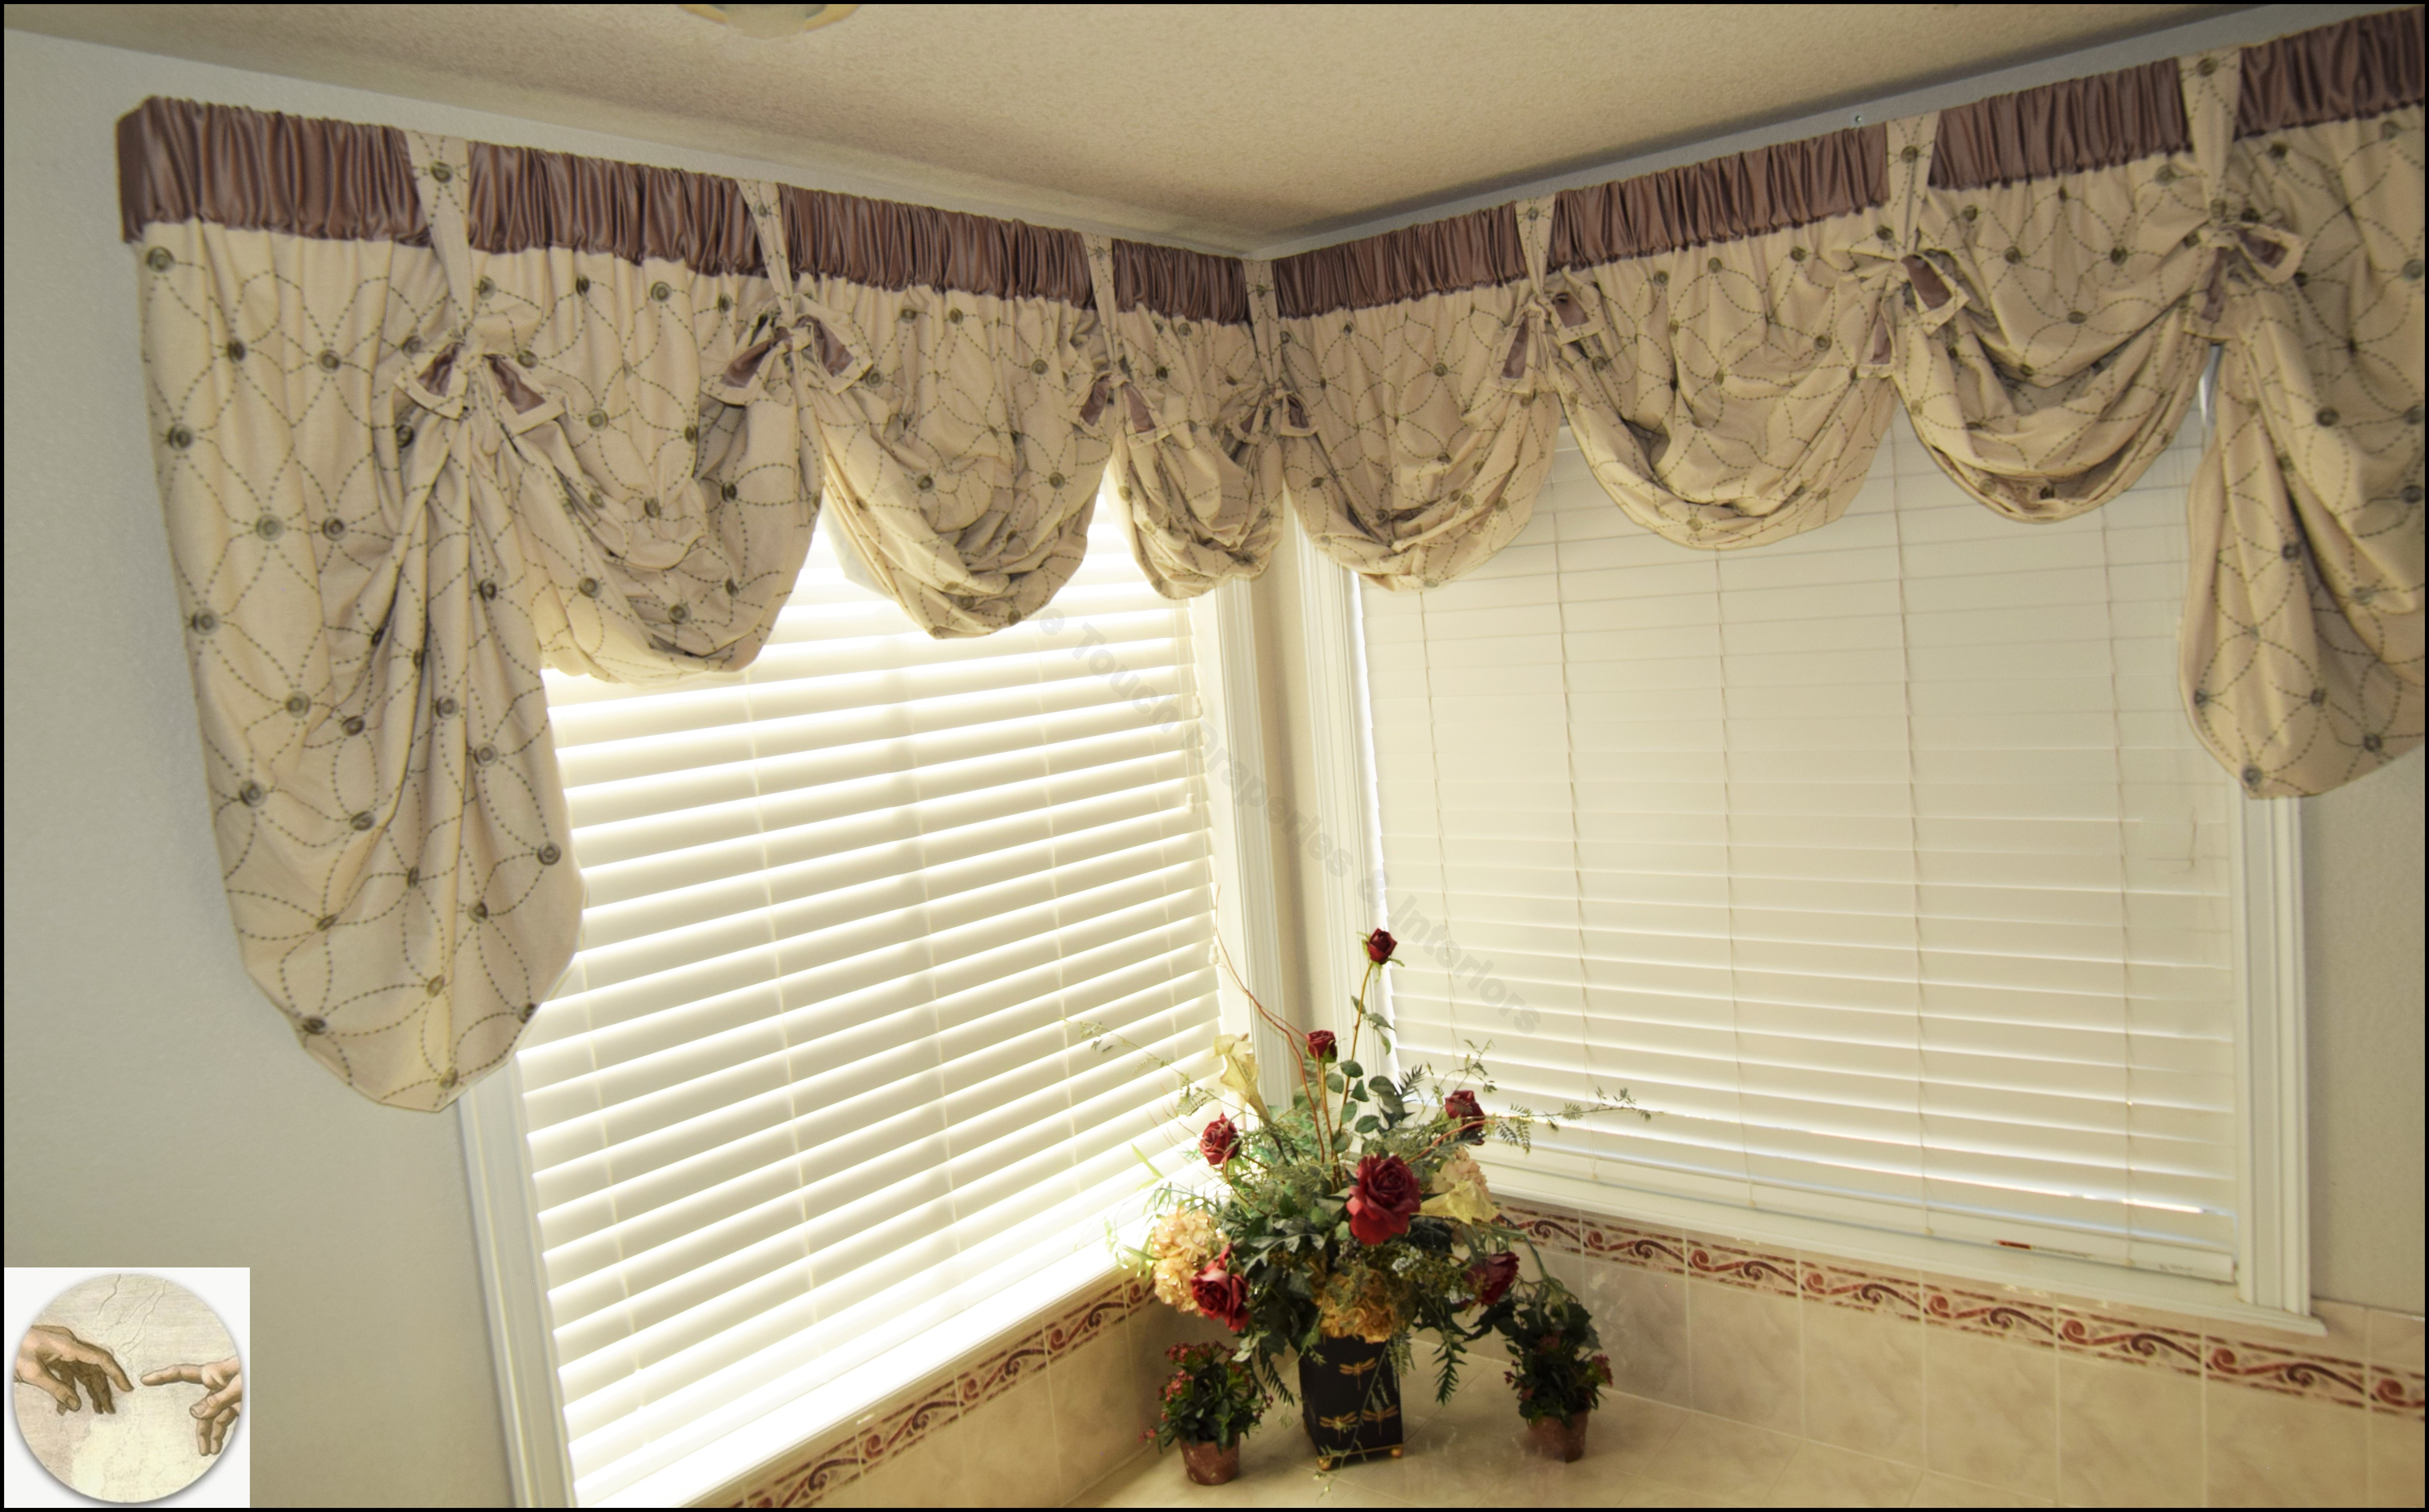 Corner window with a relaxed scalloped valance